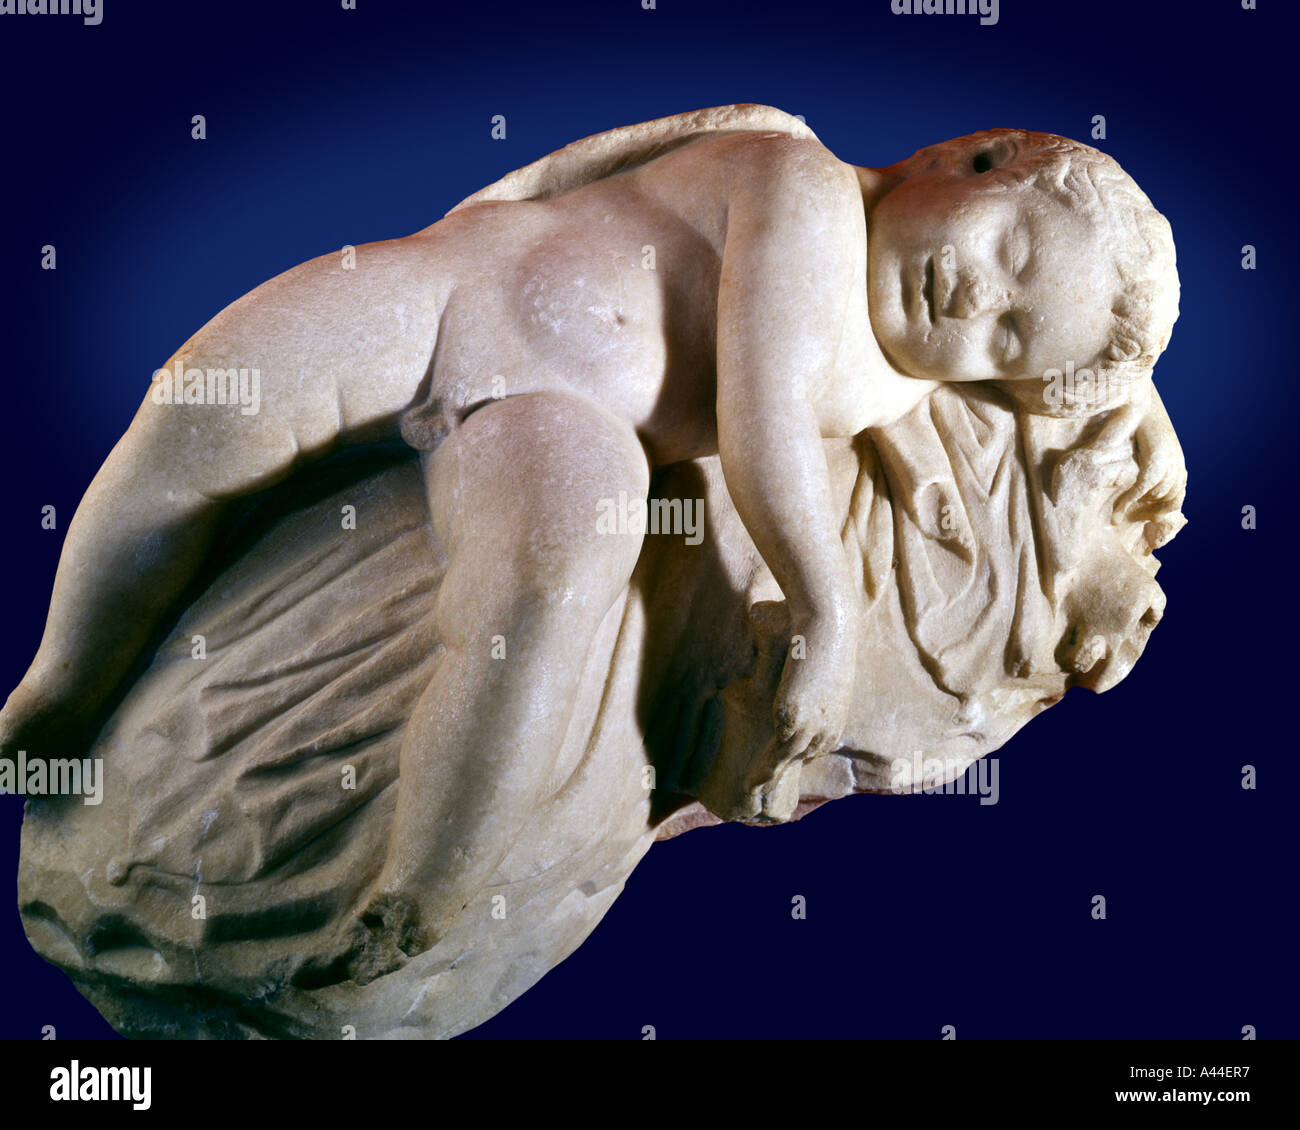 CY - NICOSIA: Marble Statue of Sleeping Eros at the Cyprus Museum - Stock Image